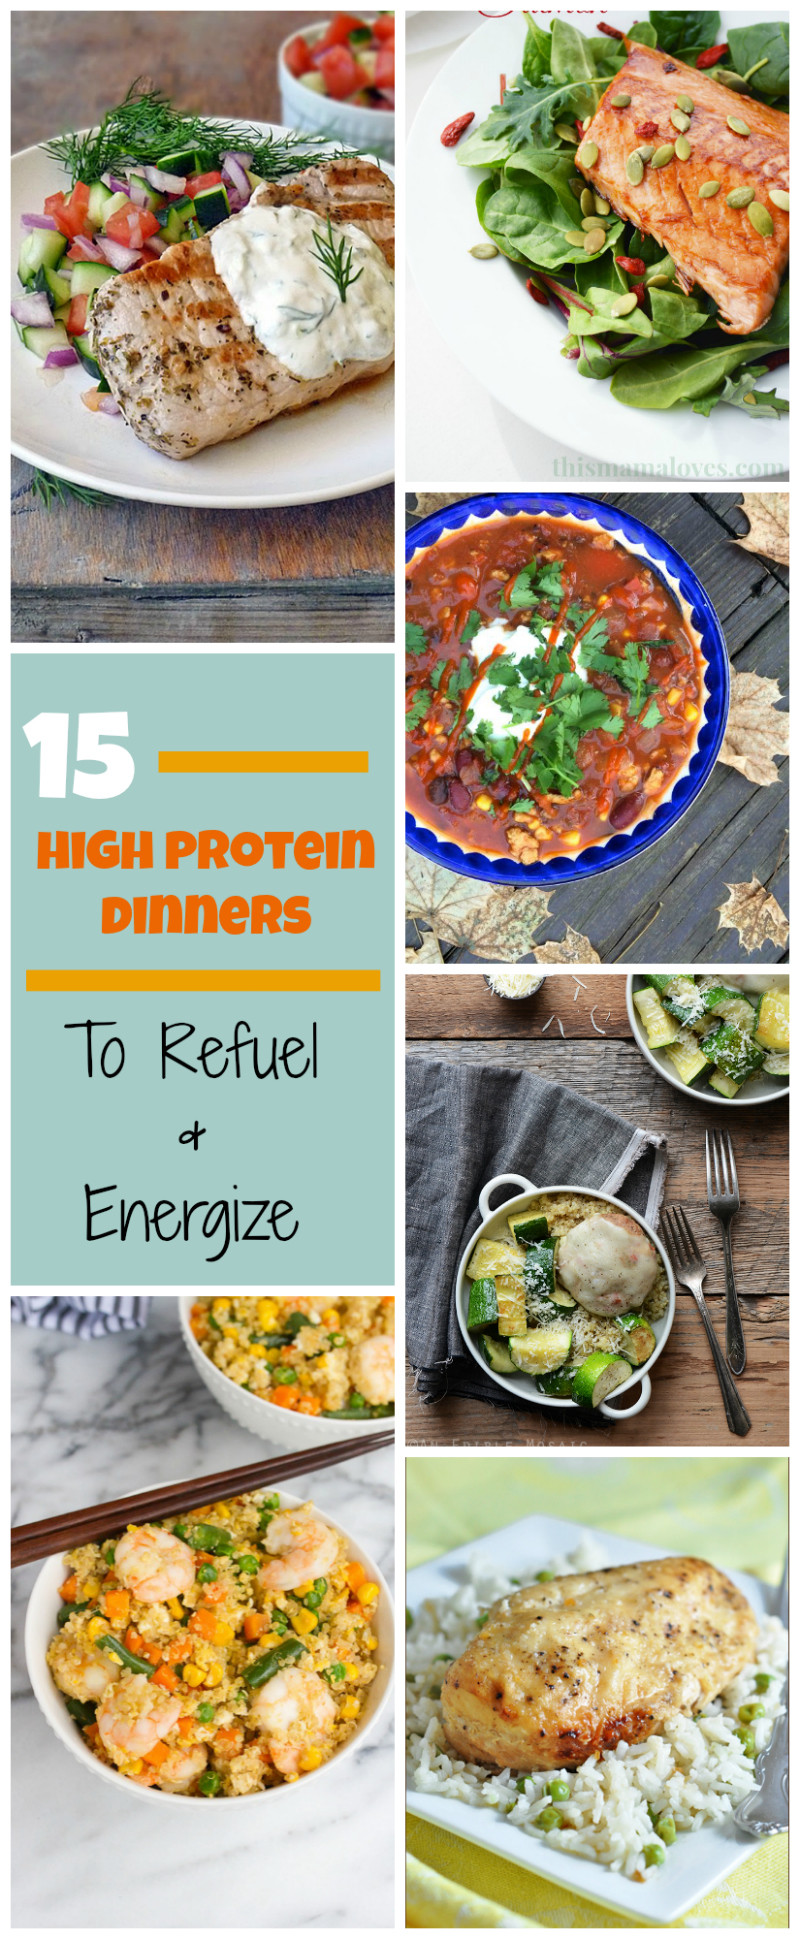 High Protein Dinner Recipes  15 High Protein Dinner Recipes Getting Lean & Losing Weight